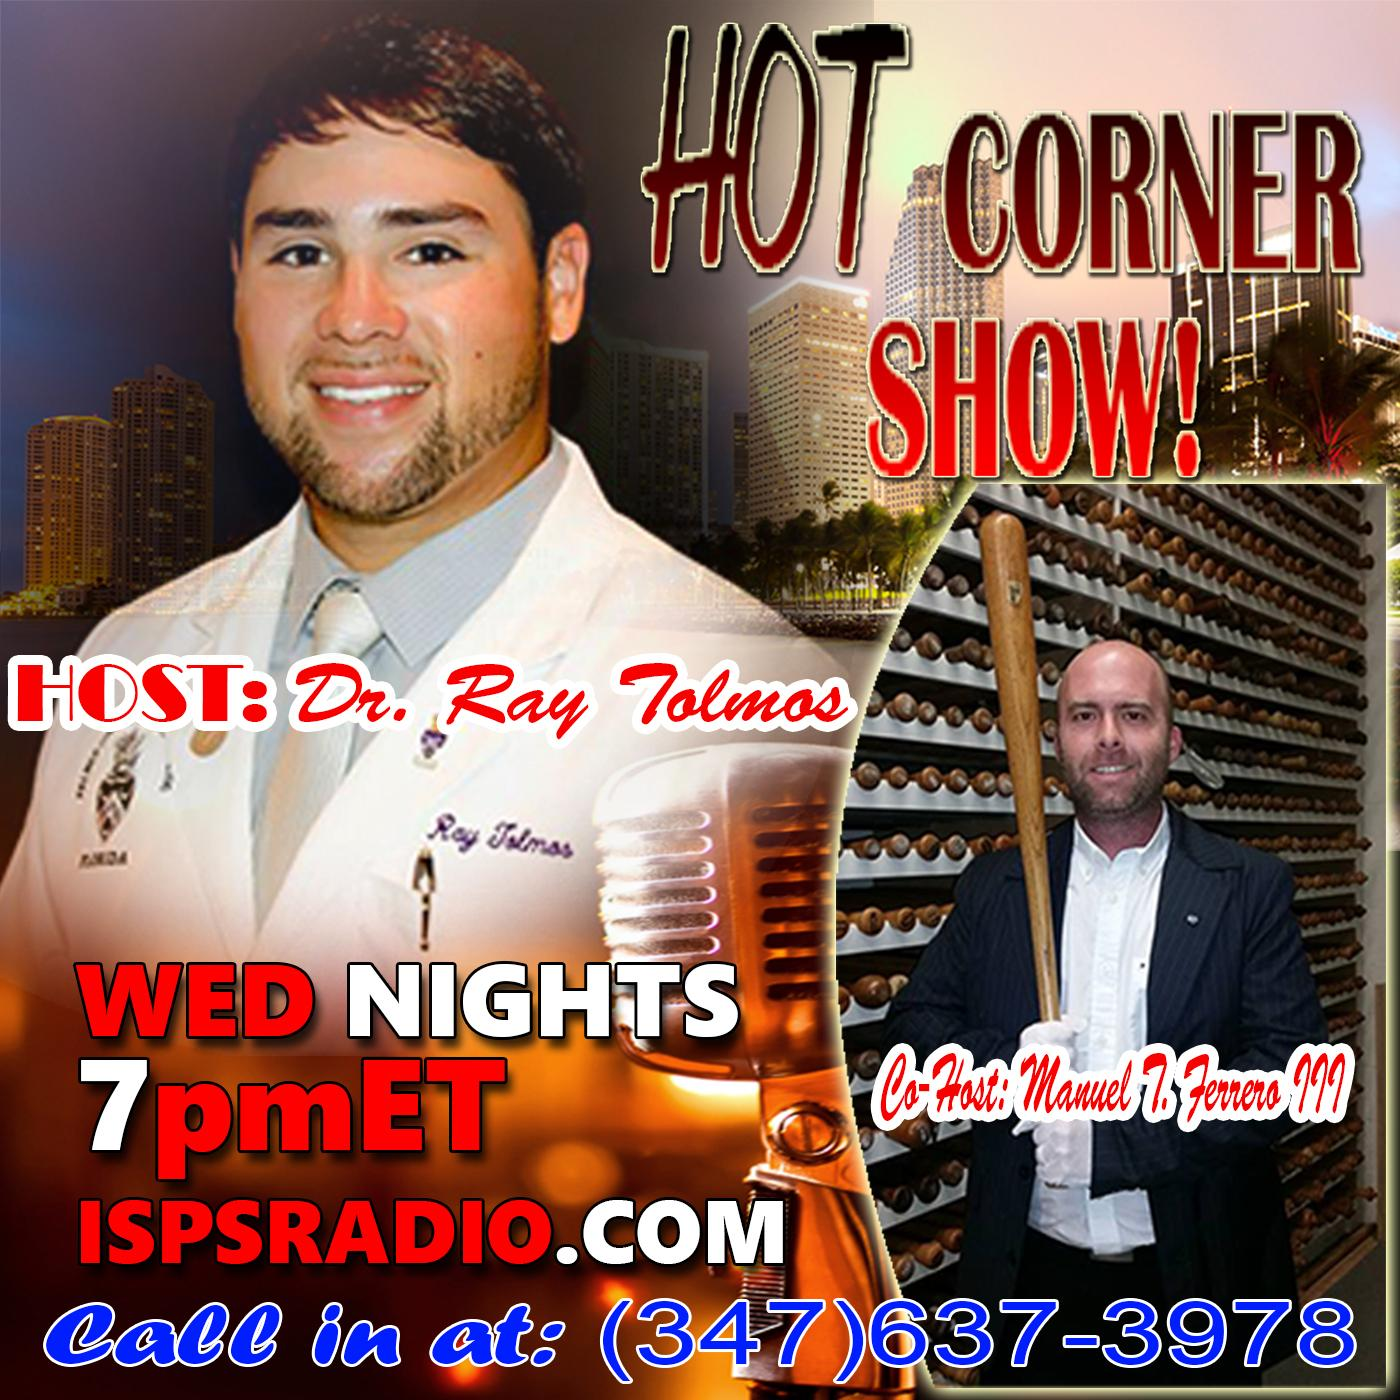 The HOT Corner Show with Dr Ray Tolmos & Manuel T. Ferrero III